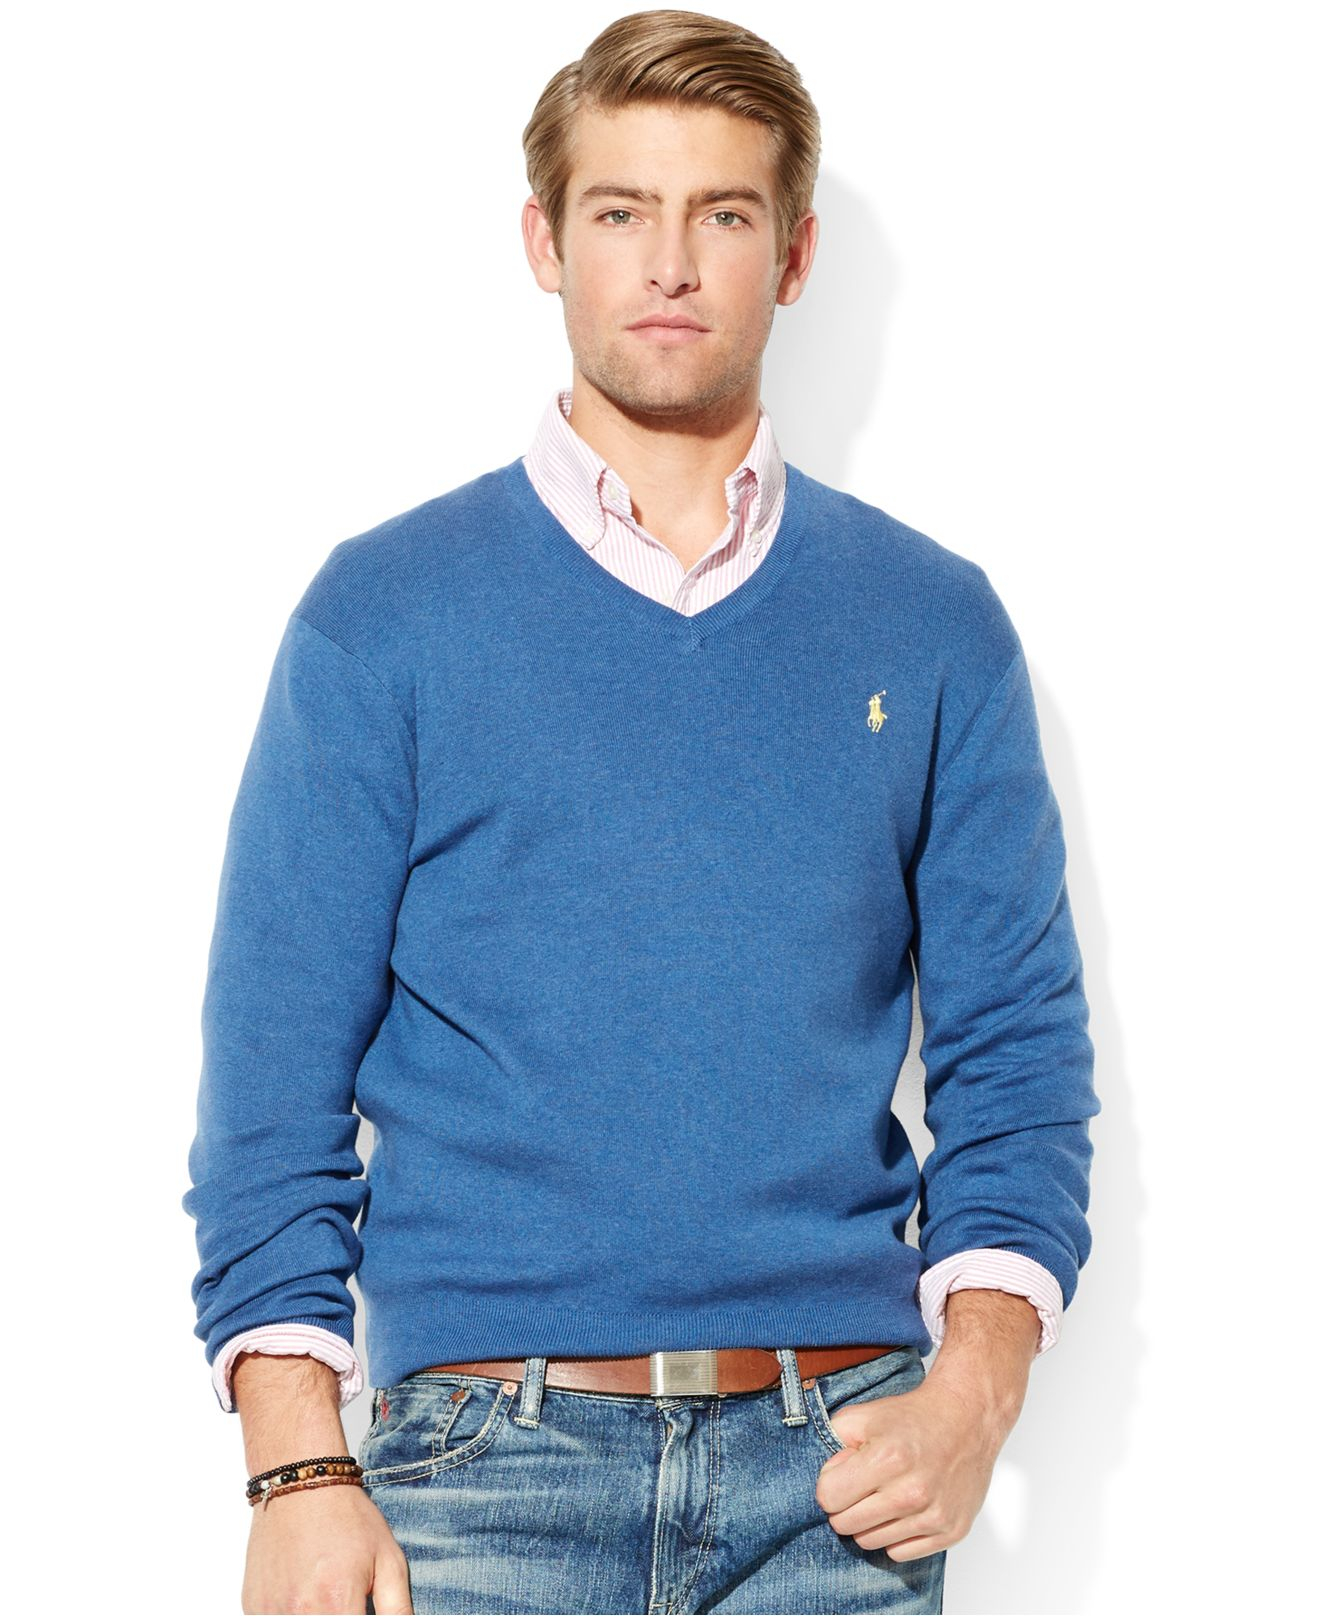 designer fashion sleek brand new Polo Ralph Lauren Blue Pima Cotton V-Neck Sweater for men